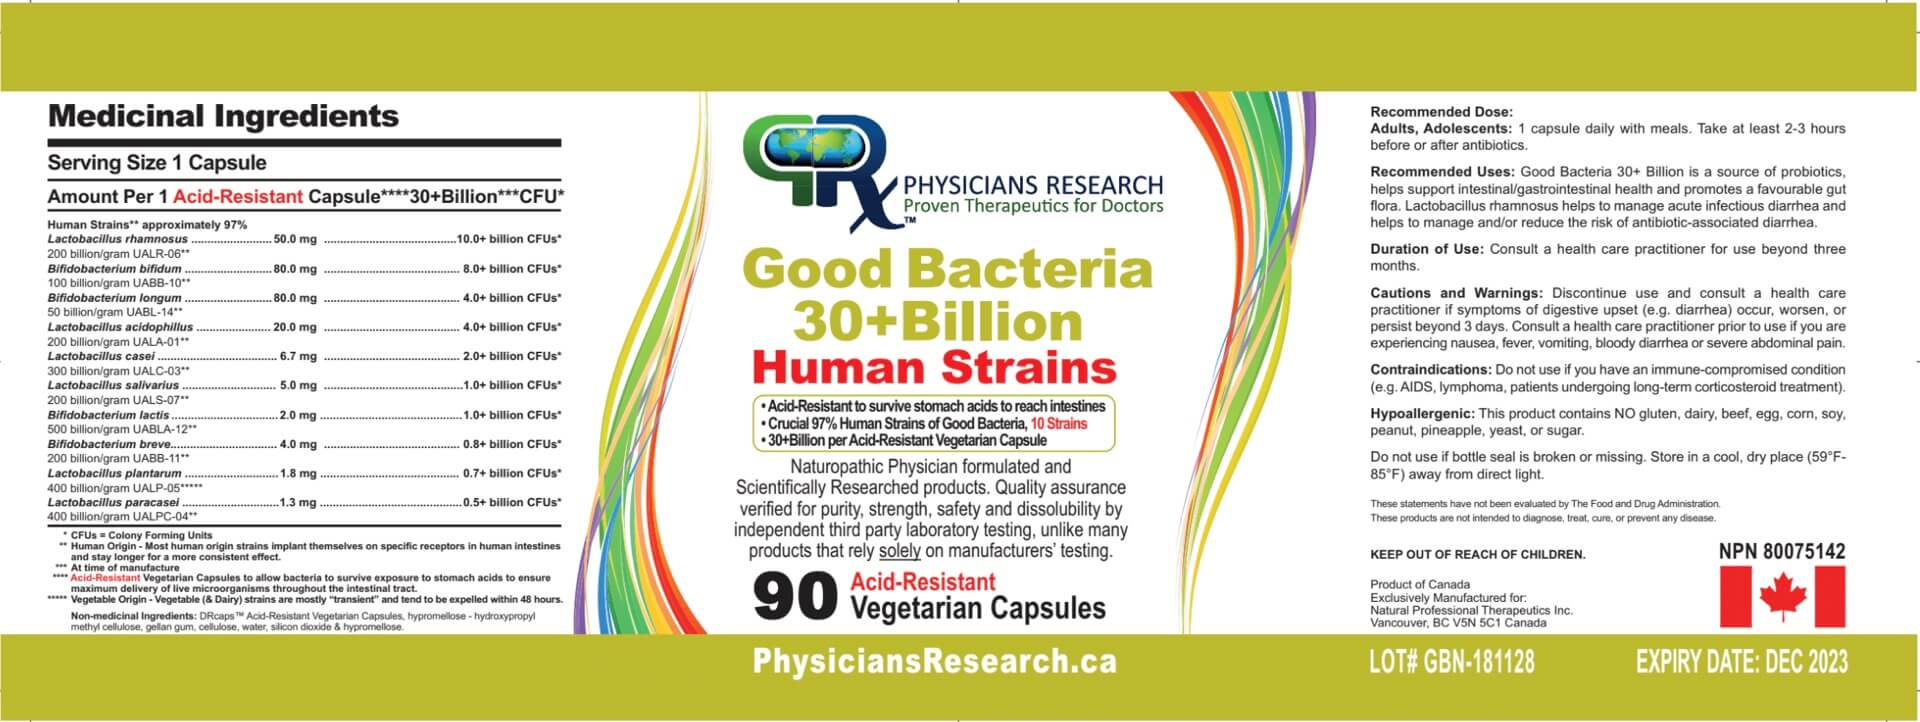 Dr. Jiwani Good Bacteria 30 Billion NO INULIN Label | Dr. Jiwani's Naturopathic Nuggets Blog